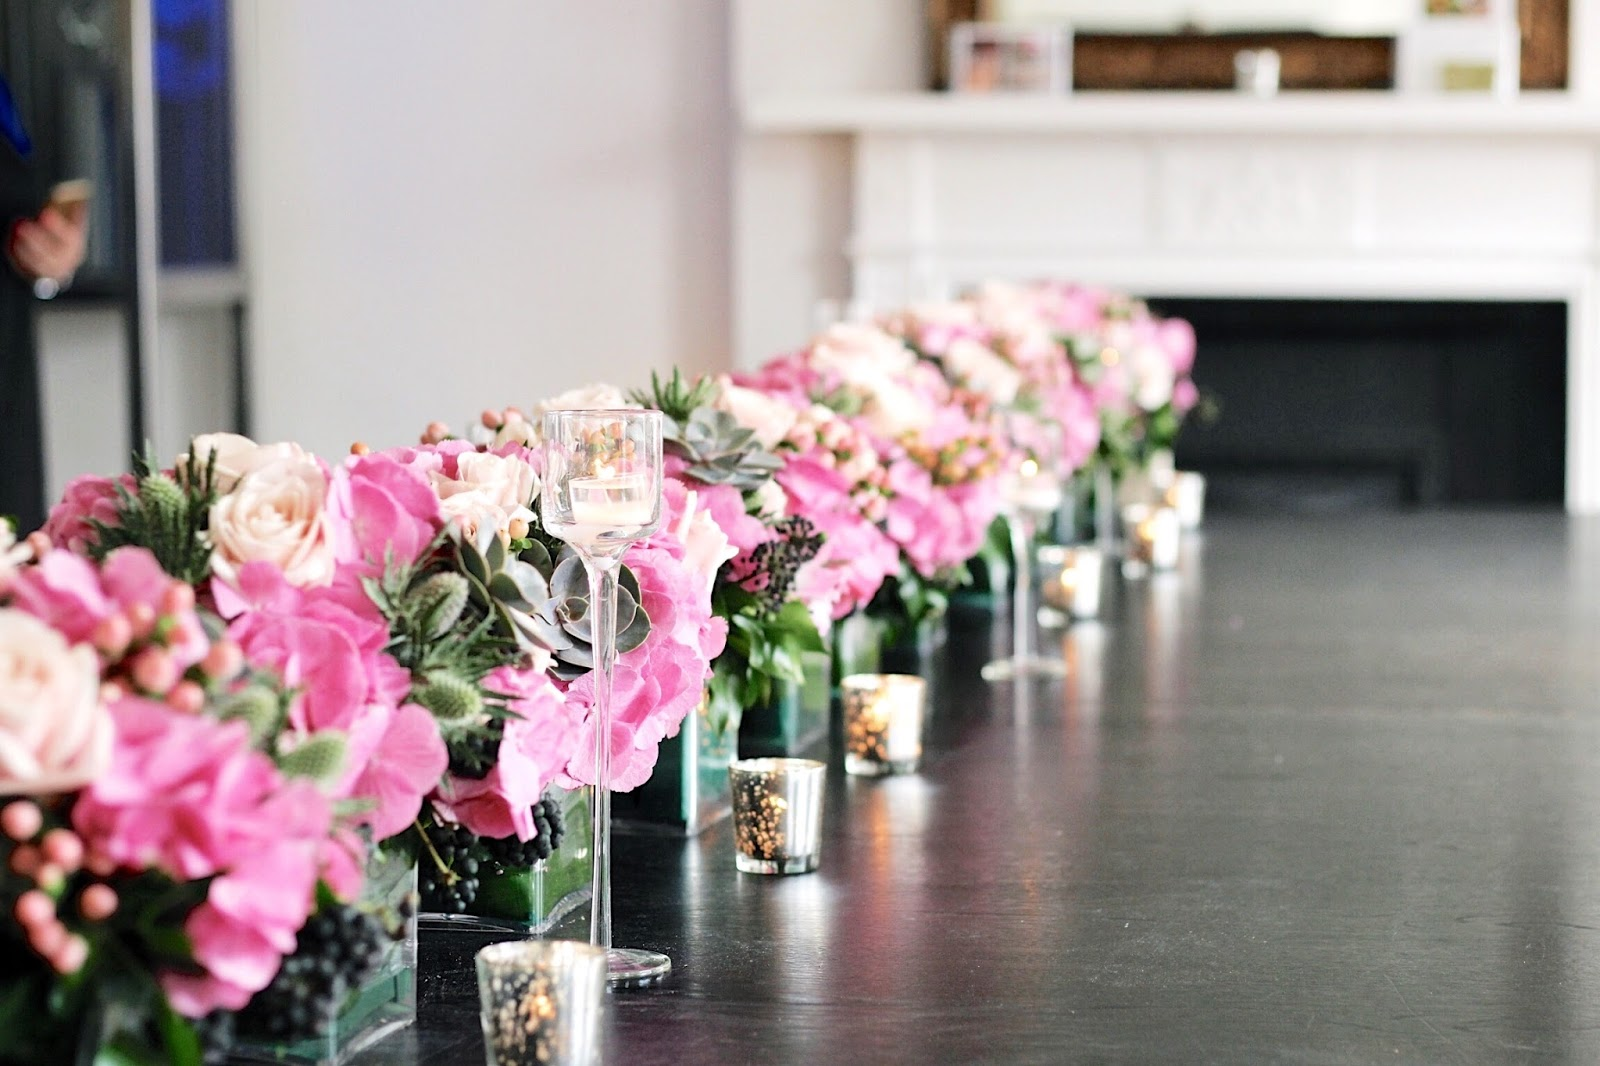 Floristry classes by Fabienne Egger at Morton's Club London